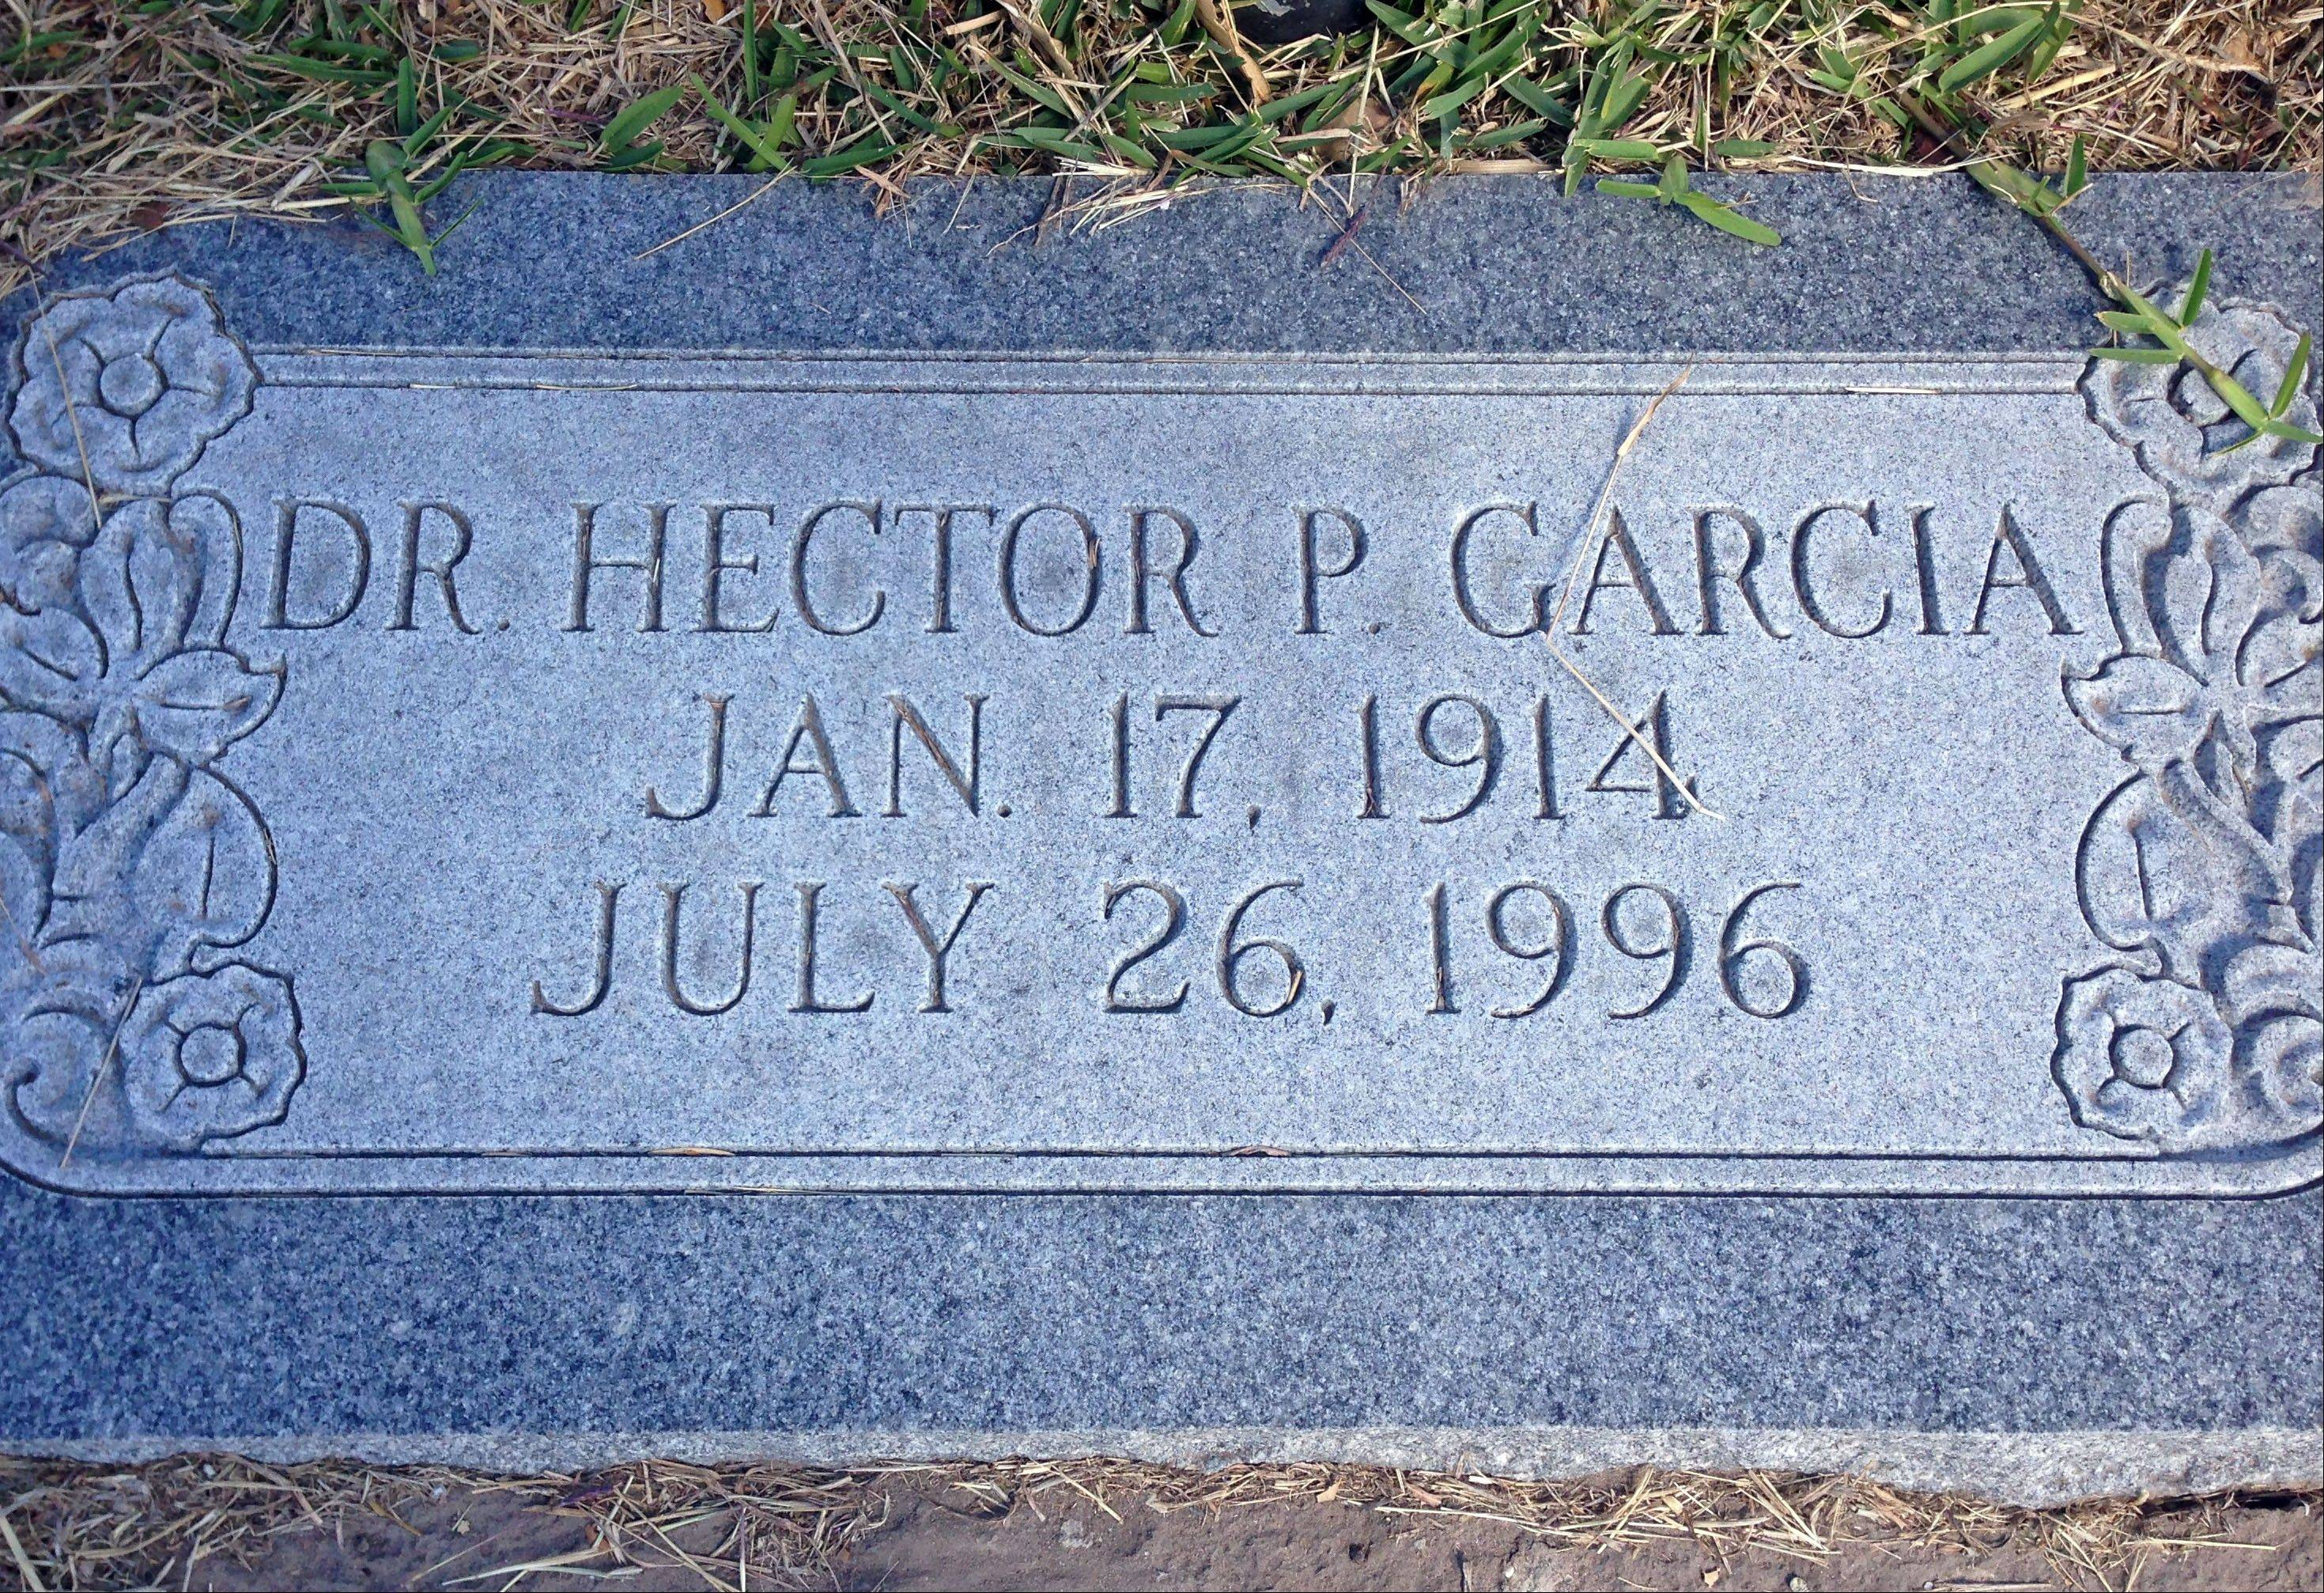 The resting place of civil rights leader and G.I. Forum founder Dr. Hector P. Garcia is shown at the Seaside Memorial Park in Corpus Christi.